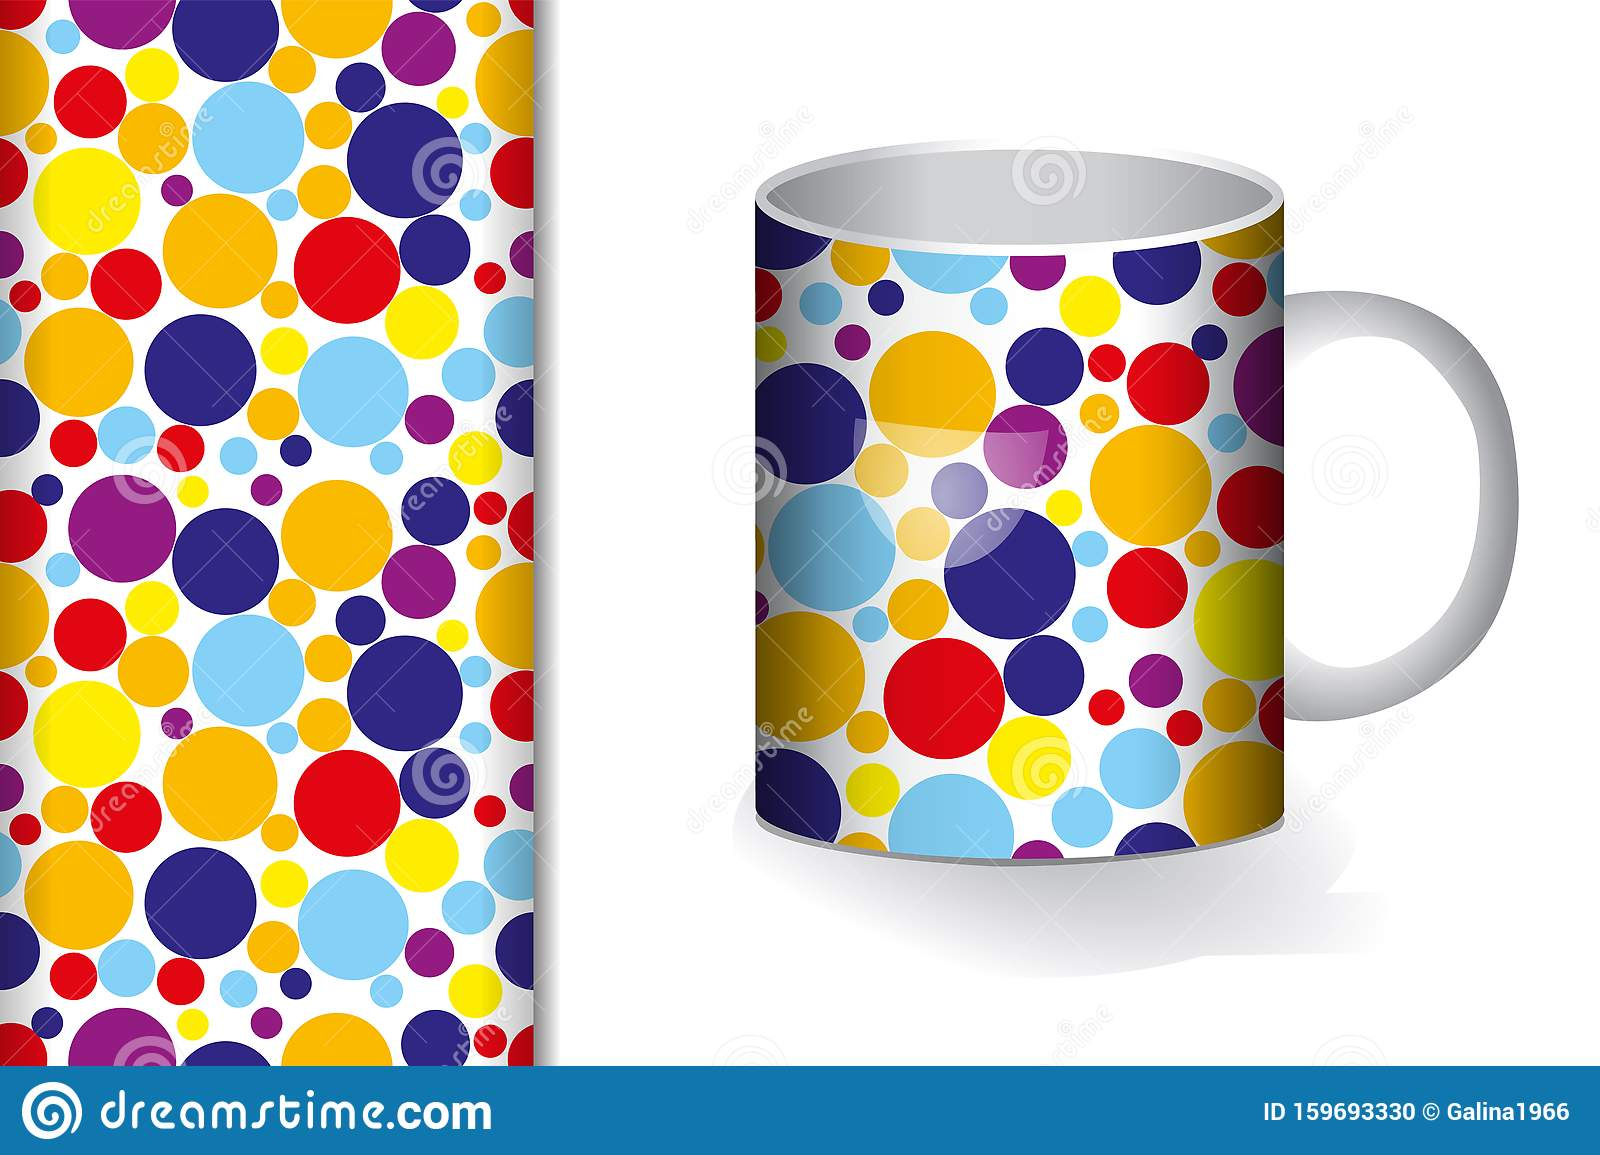 Download Background Mug Printing Design